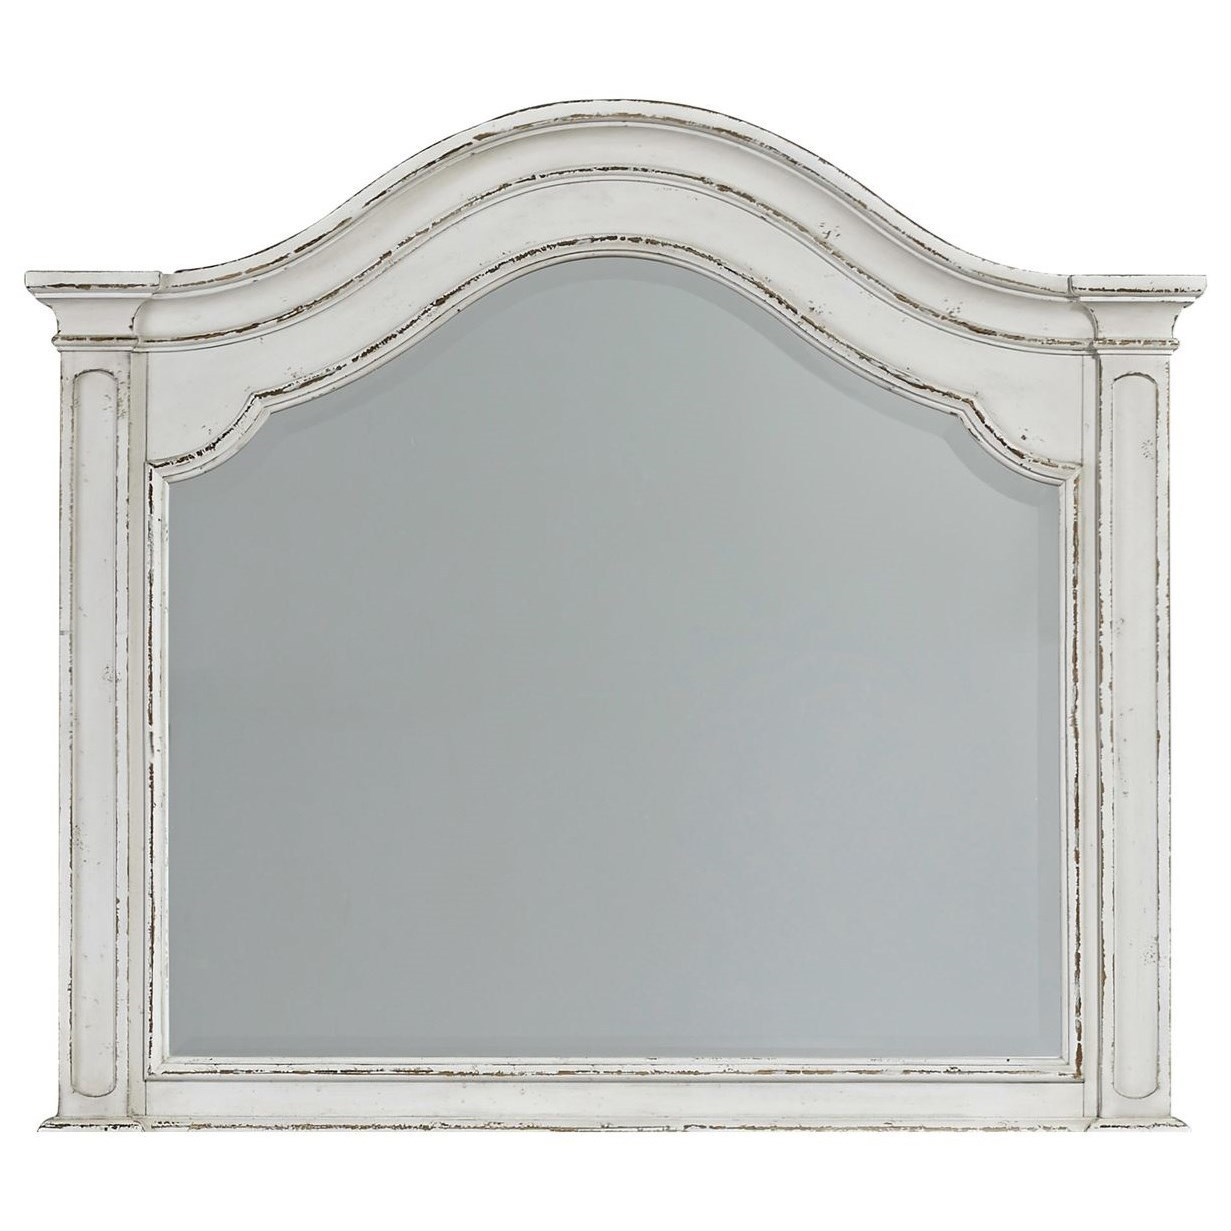 Magnolia Manor Arched Mirror by Liberty Furniture at Bullard Furniture